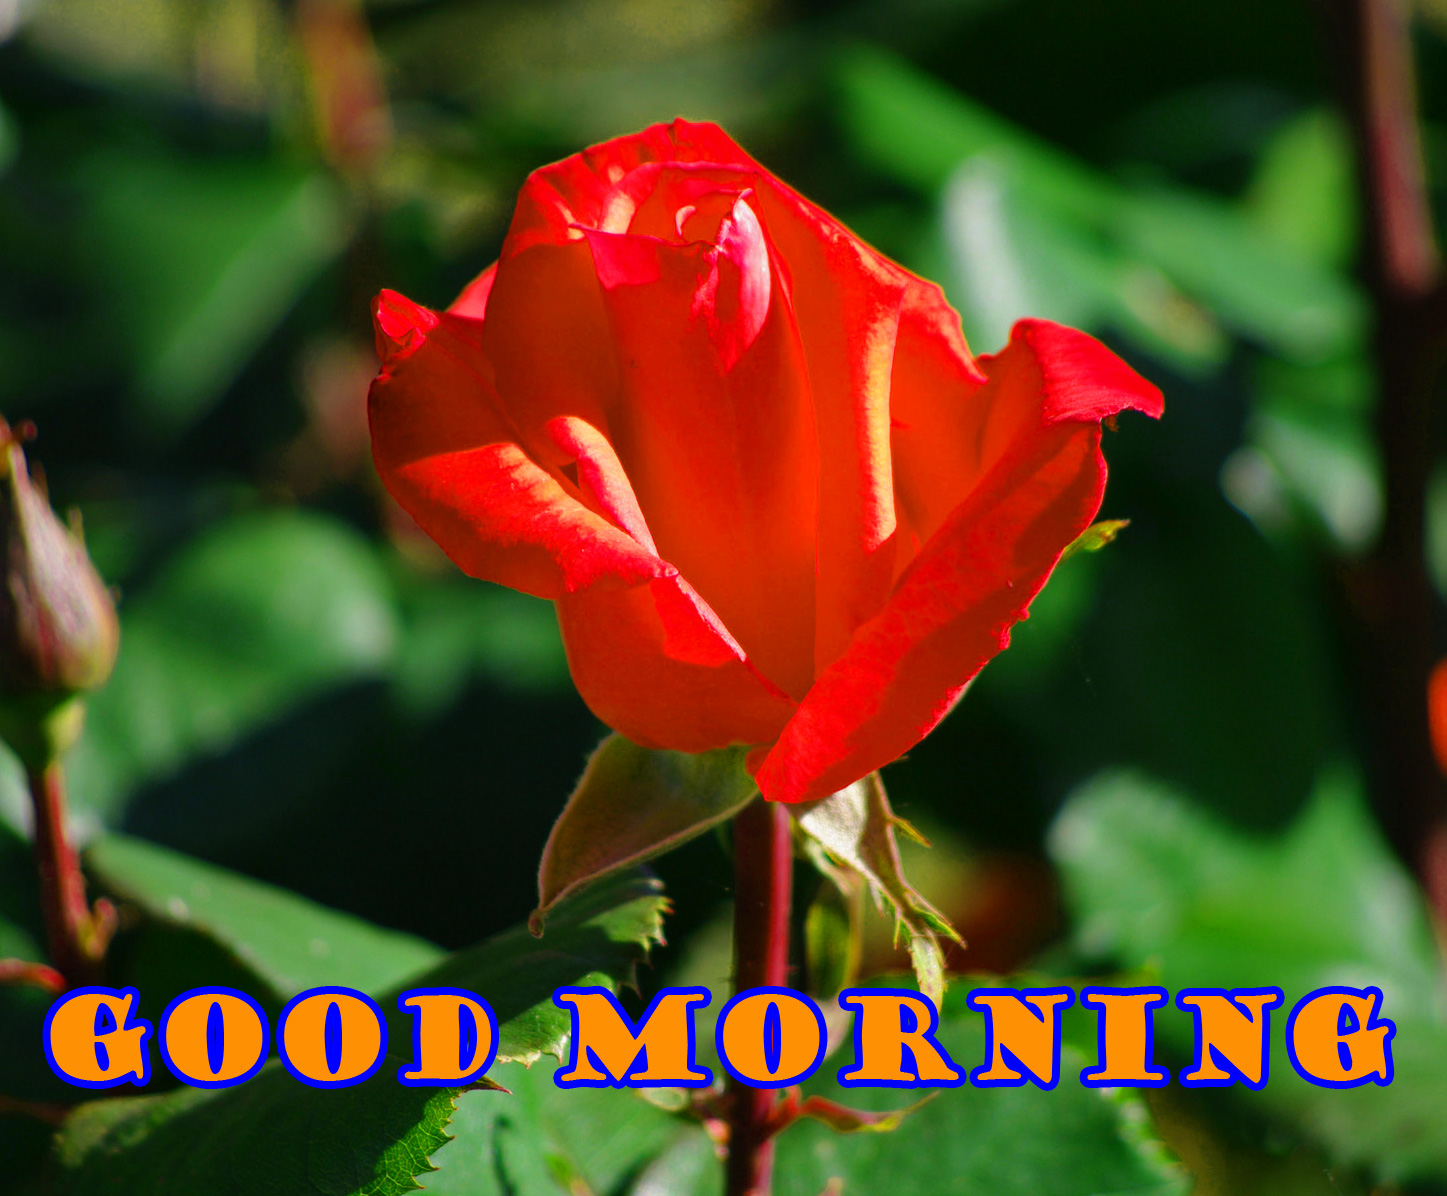 Good Morning Red Rose Photo Wallpaper Pictures Free Download